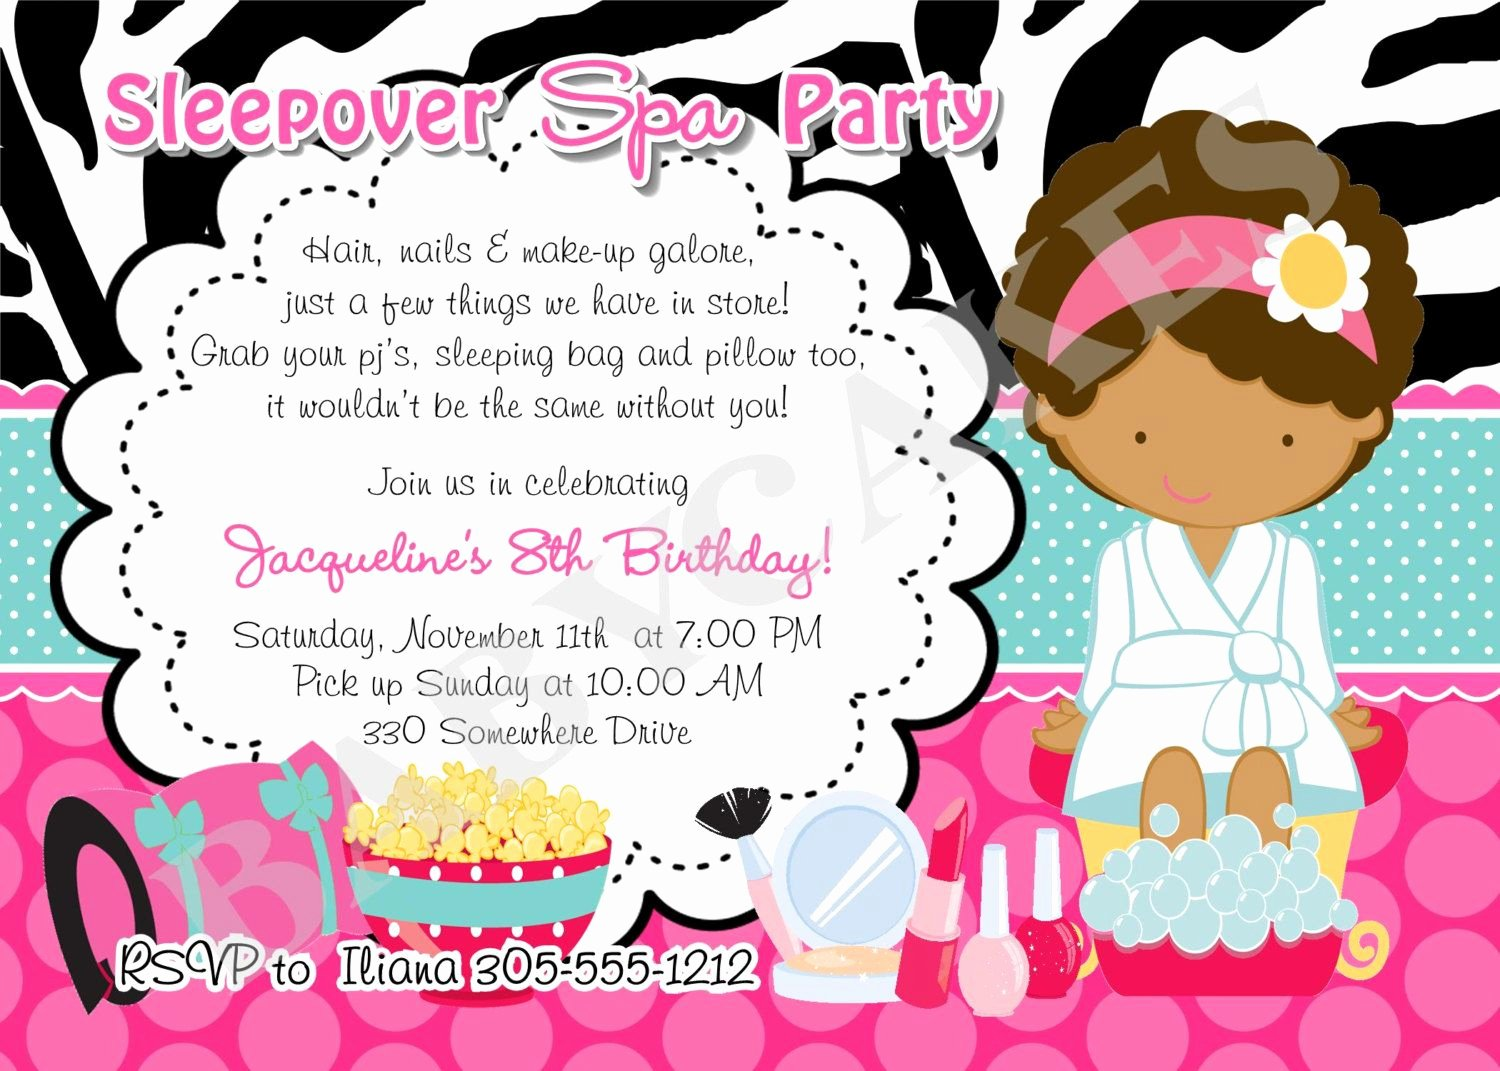 Free Sleepover Invitation Template Awesome Spa Sleepover Birthday Invitation Invite Sleepover Spa